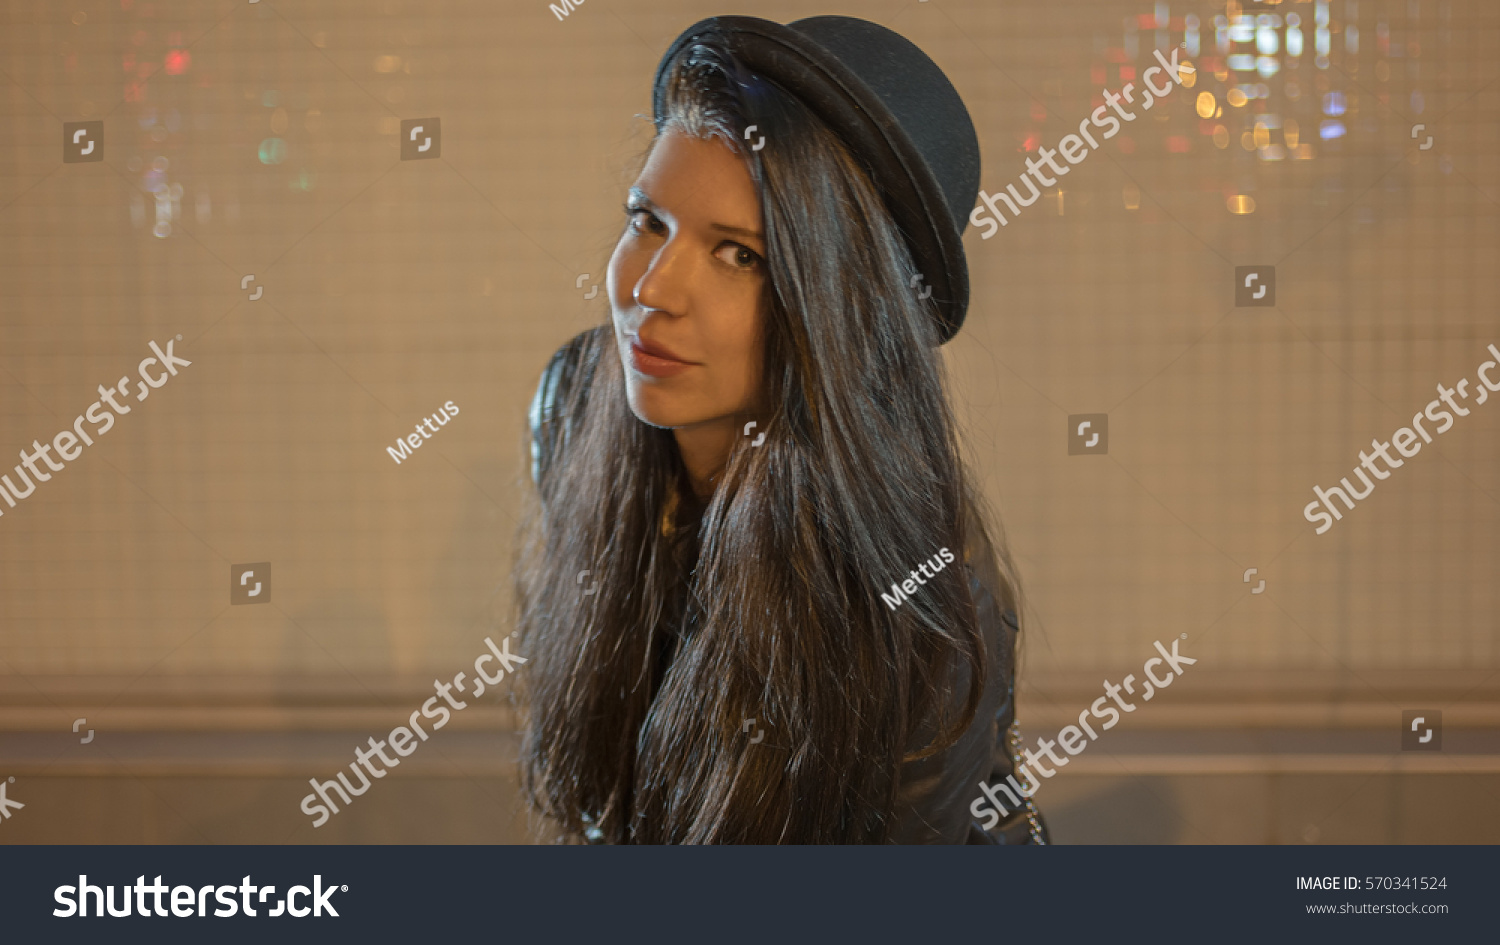 Young woman in black hat looking at camera, retro color shot, colorized image, selective focus. Colorized vintage looking image.